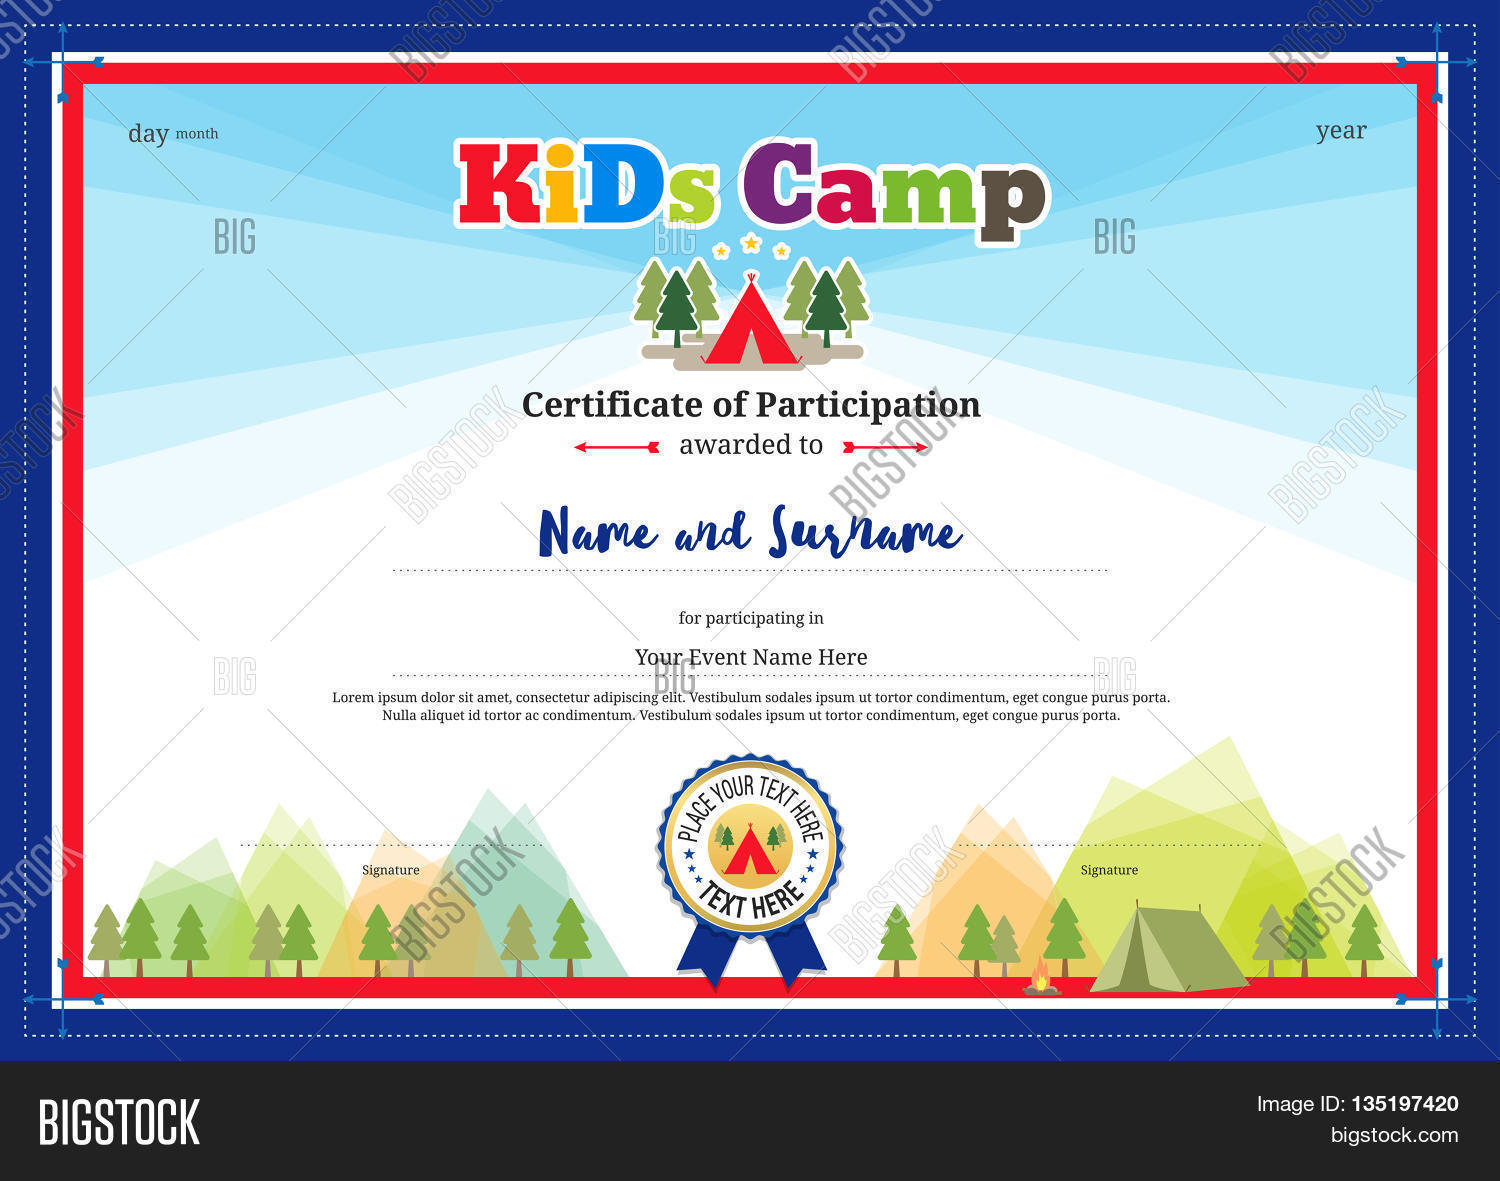 Colorful modern certificate vector photo bigstock colorful and modern certificate of participation for kids activities or kids camp with camping background xflitez Images